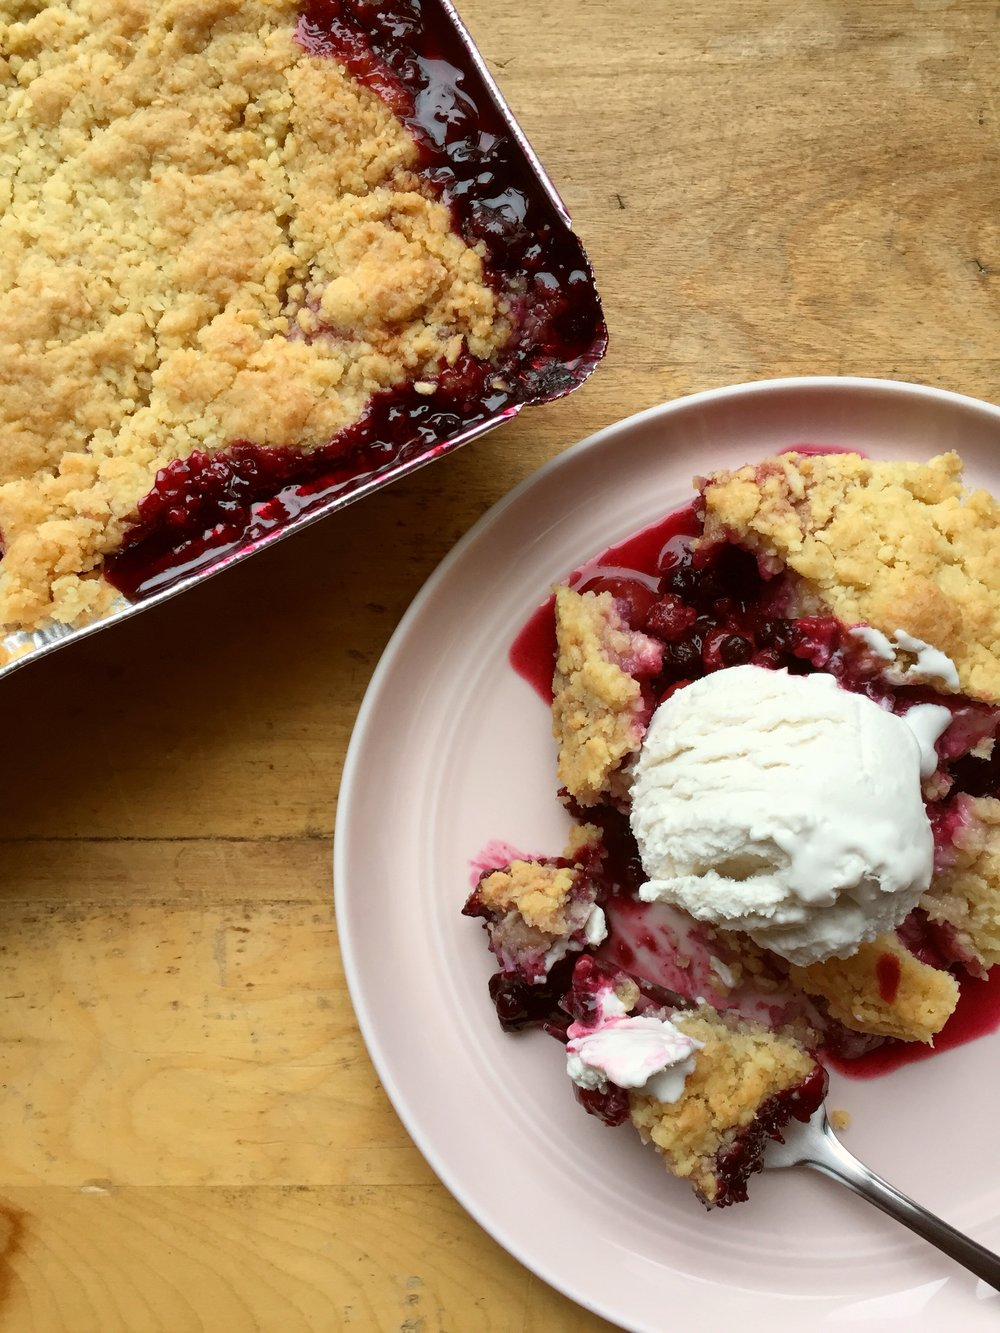 Berry Cobblers : $18(soy free)  We take sour cherries, wild blueberries, tart raspberries and some juicy strawberries, cook them down into a berry pie filling and top with an incredibe buttery coconut crumble. Perfect for serving with vanilla icecream after dinner, or for a decadent weekend breakfast. Serves 2 to 4 depending on the appetite.